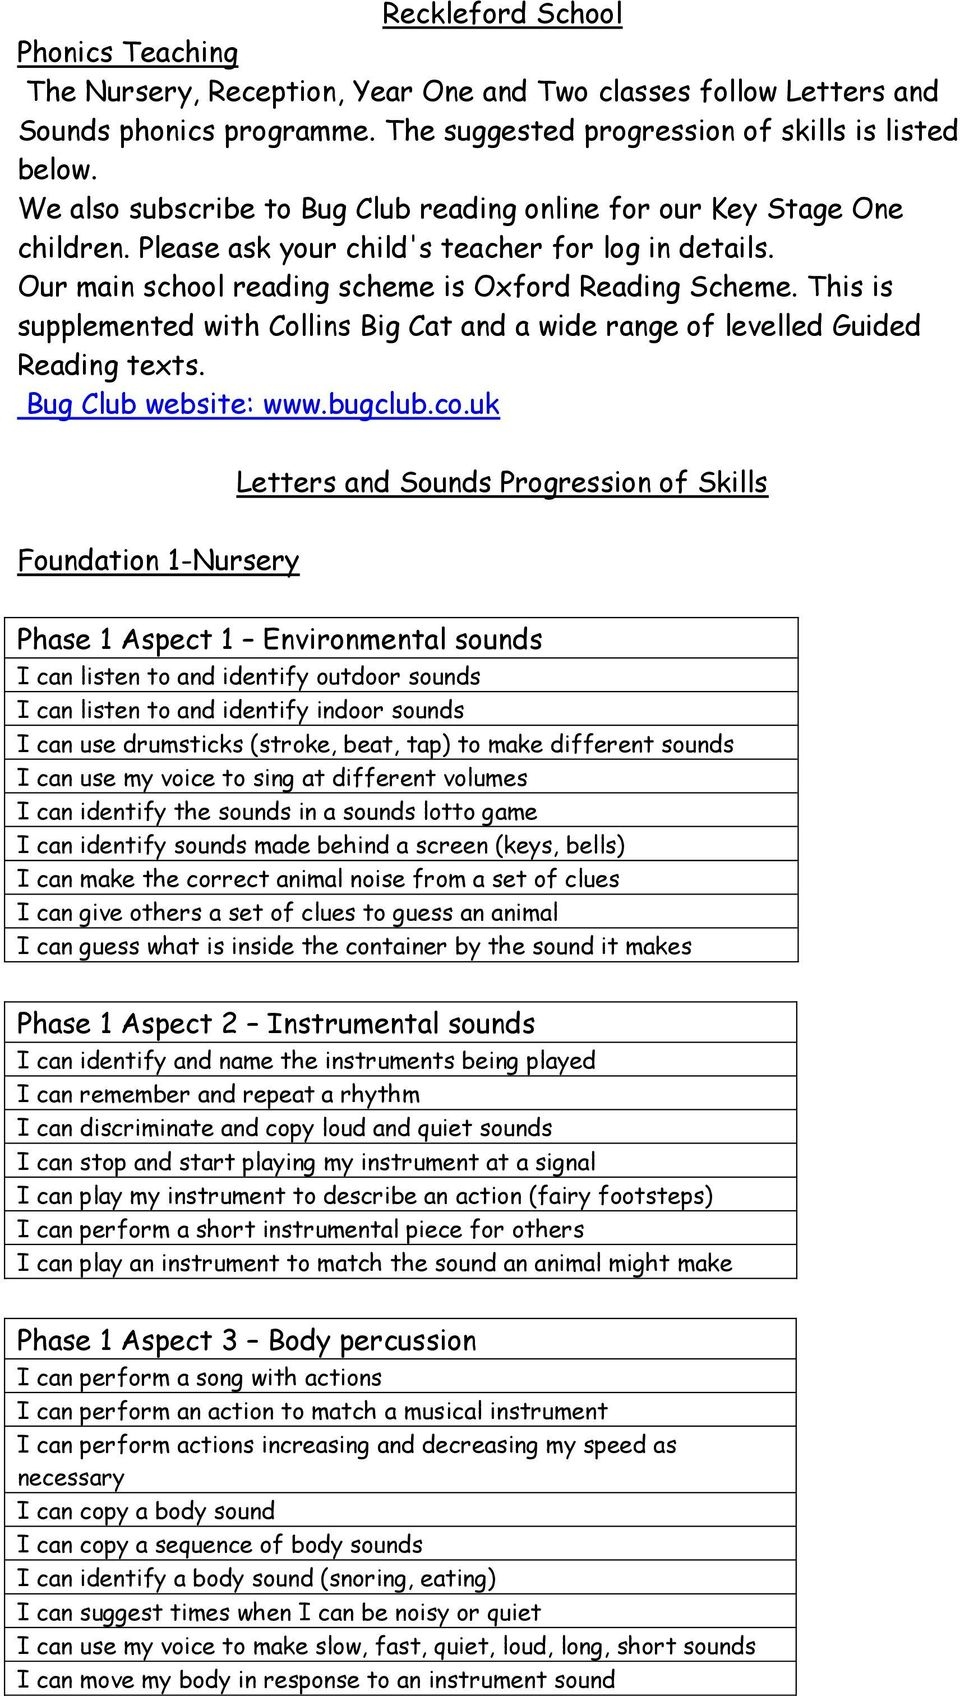 Letters and Sounds Progression of Skills - PDF